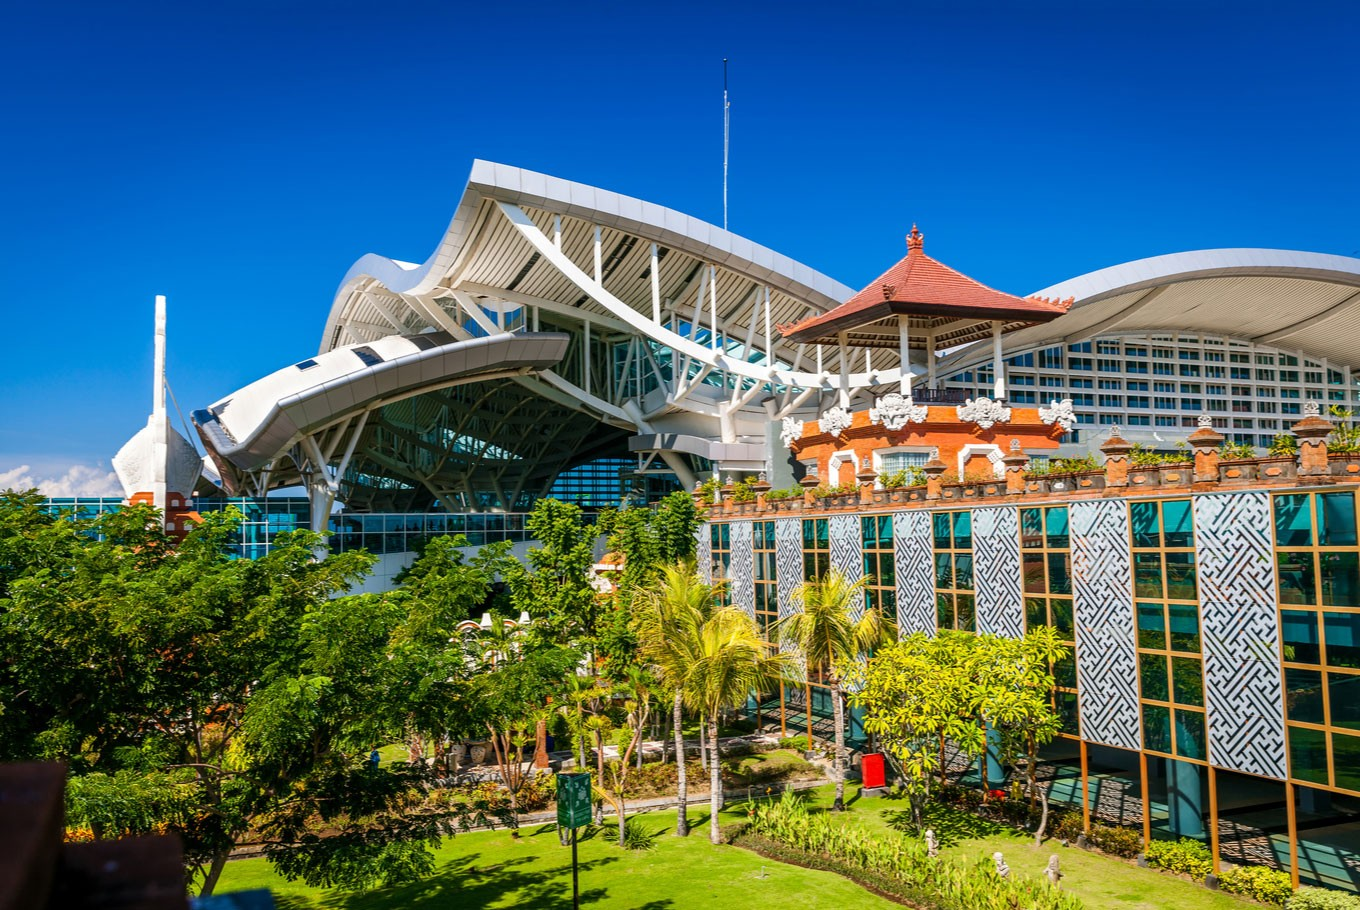 Bali Airport Celebrates 24 Million Passengers In 2019